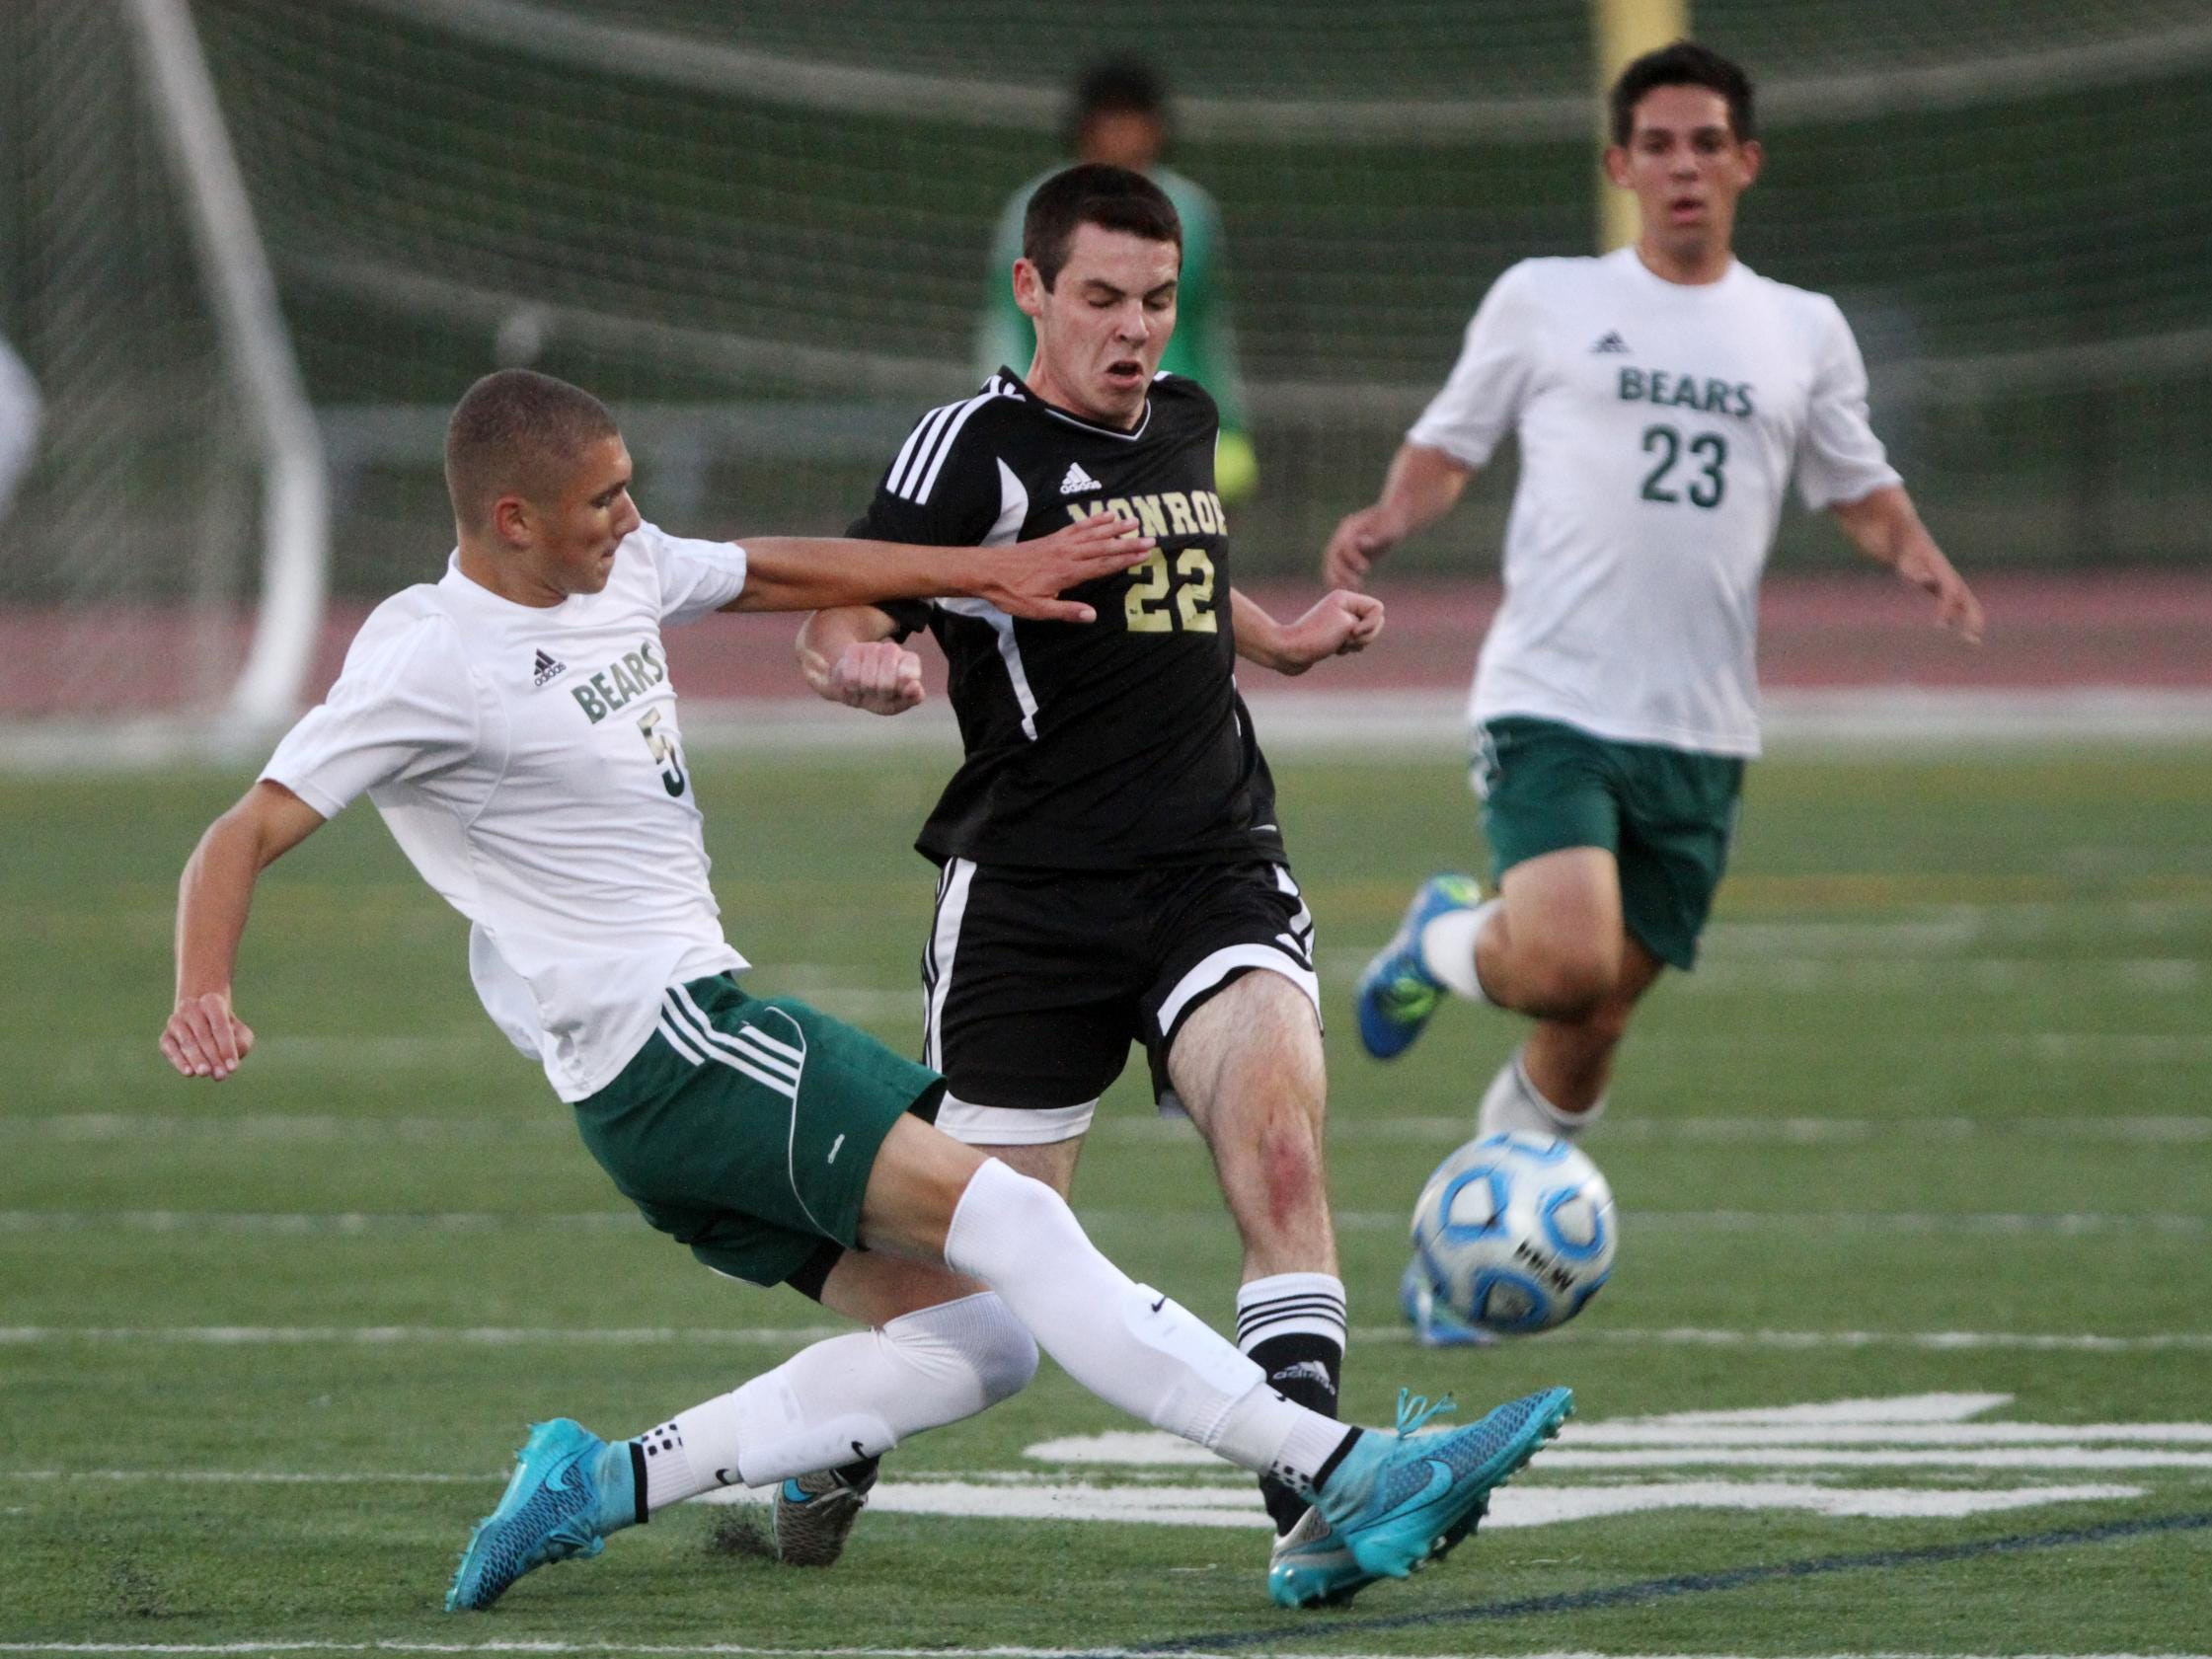 East Brunswick's Zachary Desrosier tackles Monroe's Ryan McCabe during the first half on Thursday in East Brunswick.